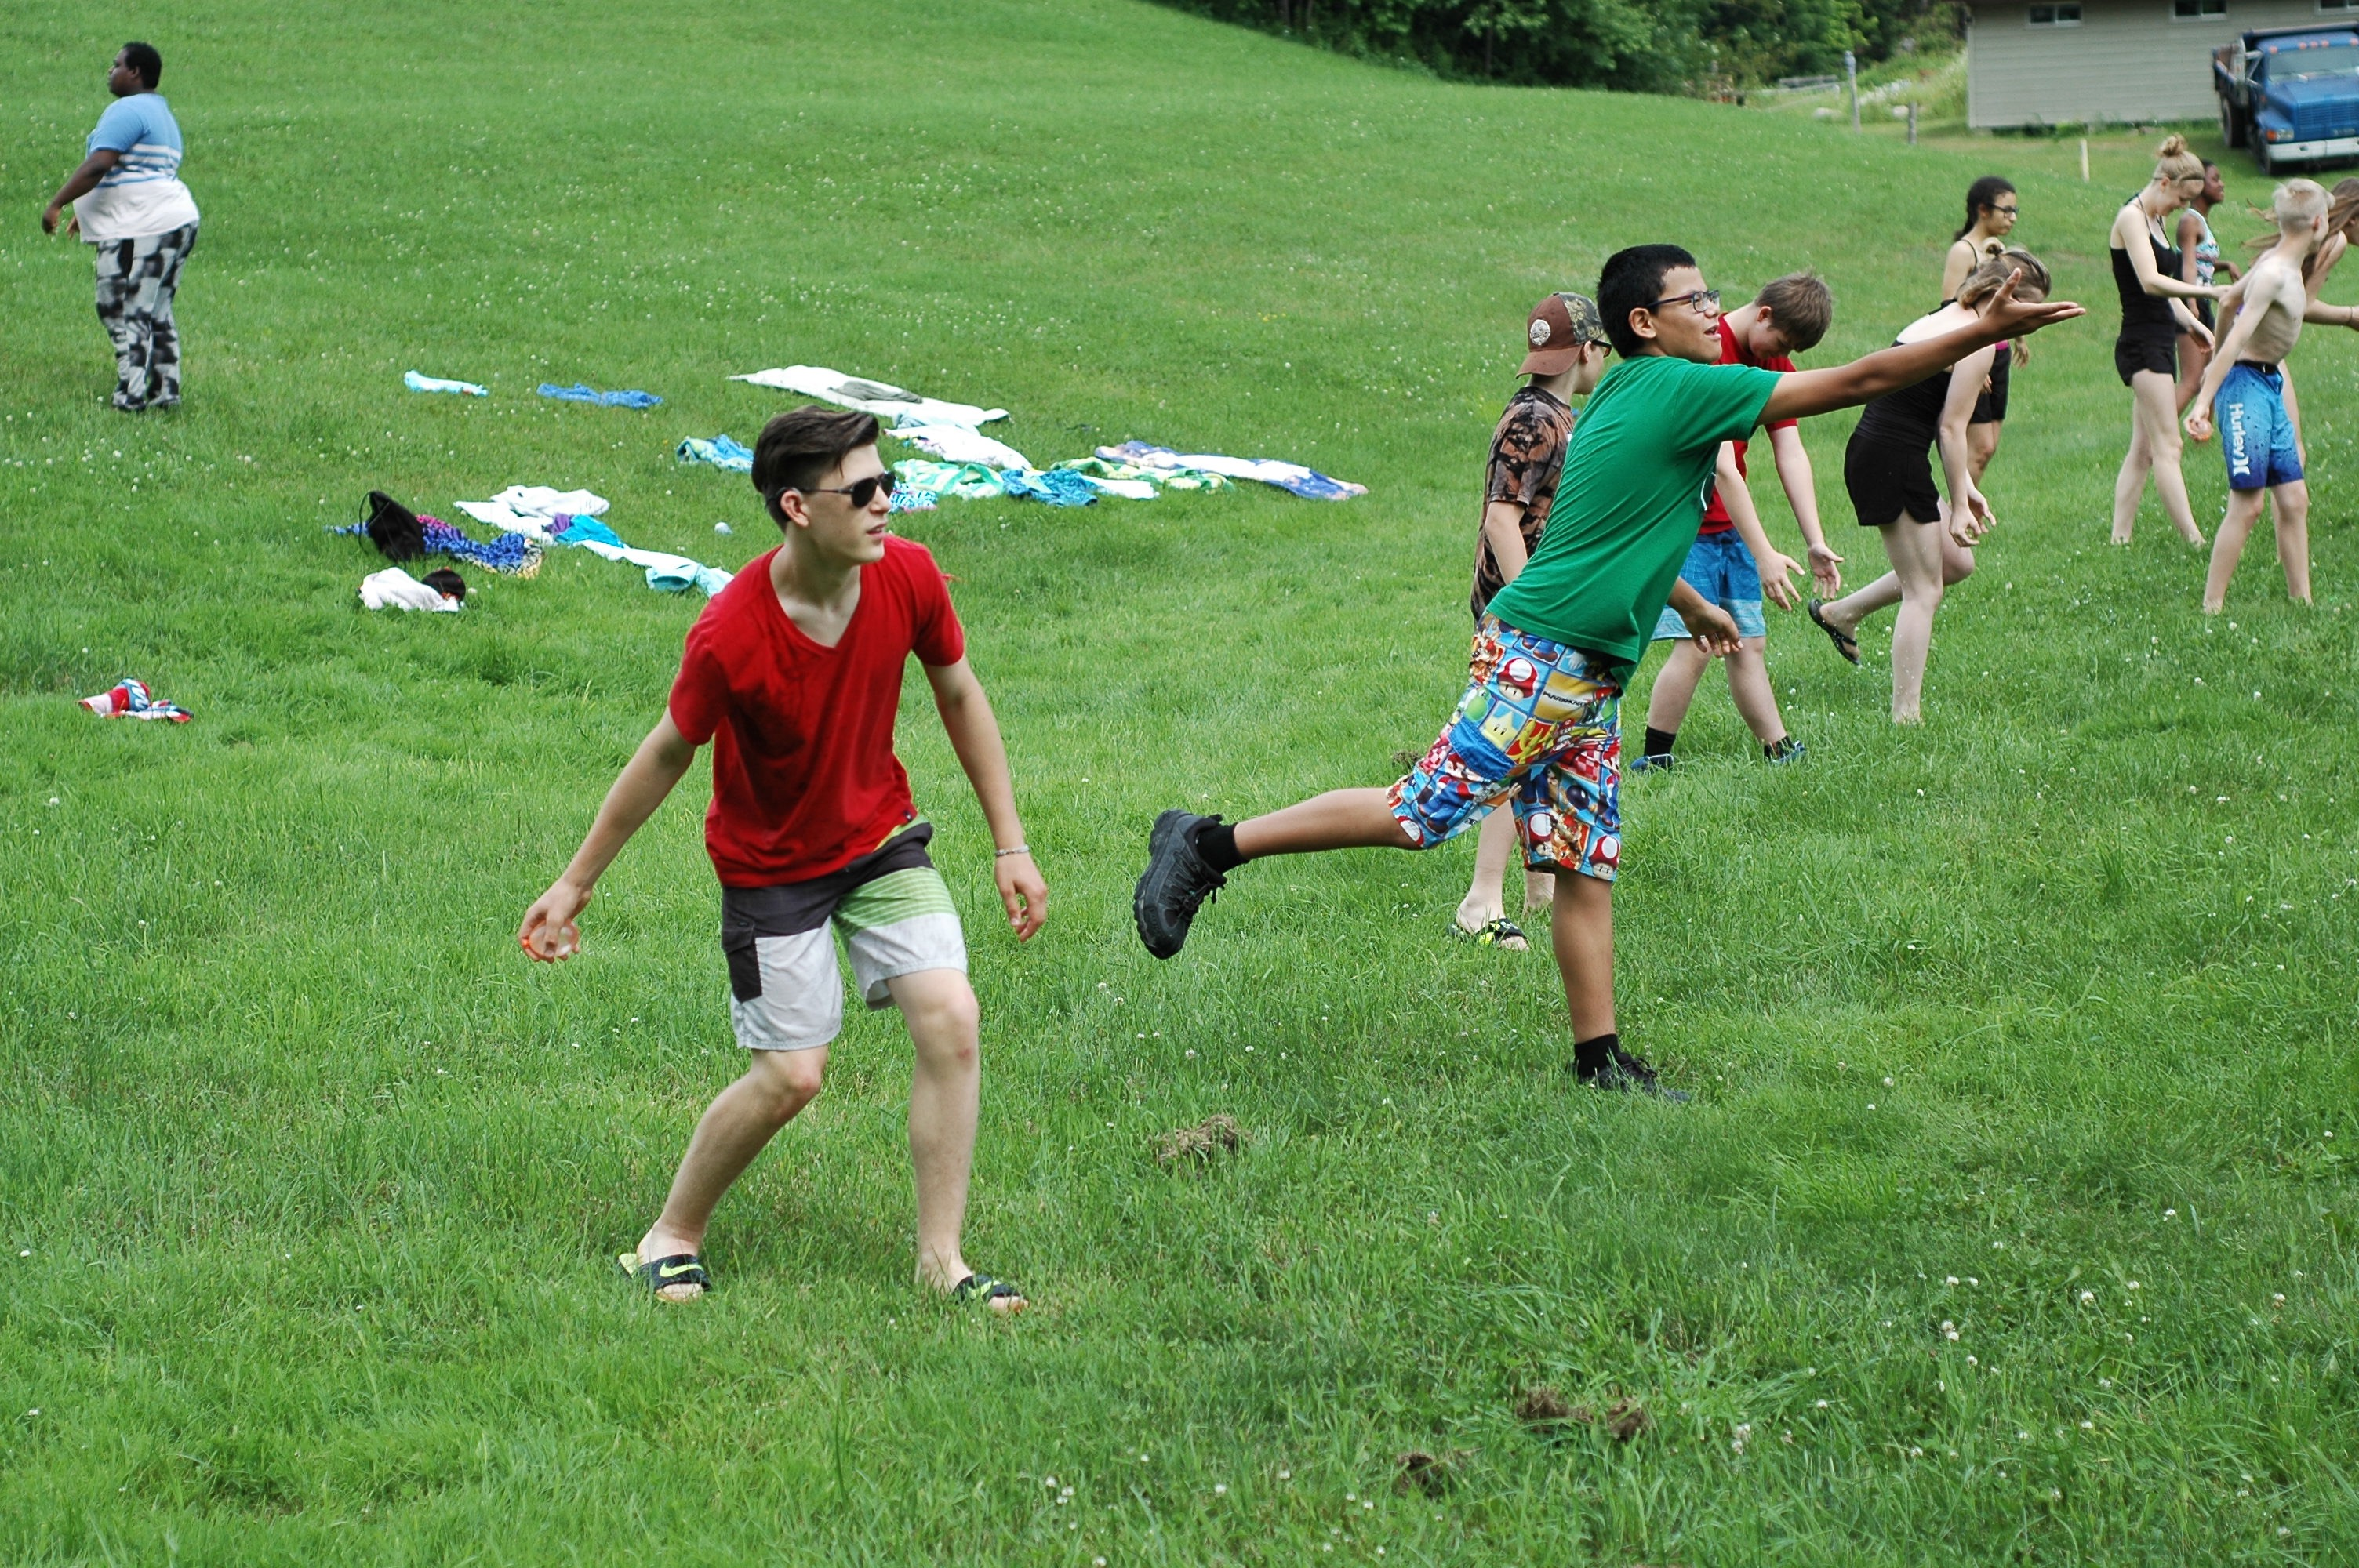 Campers playing outdoor games.